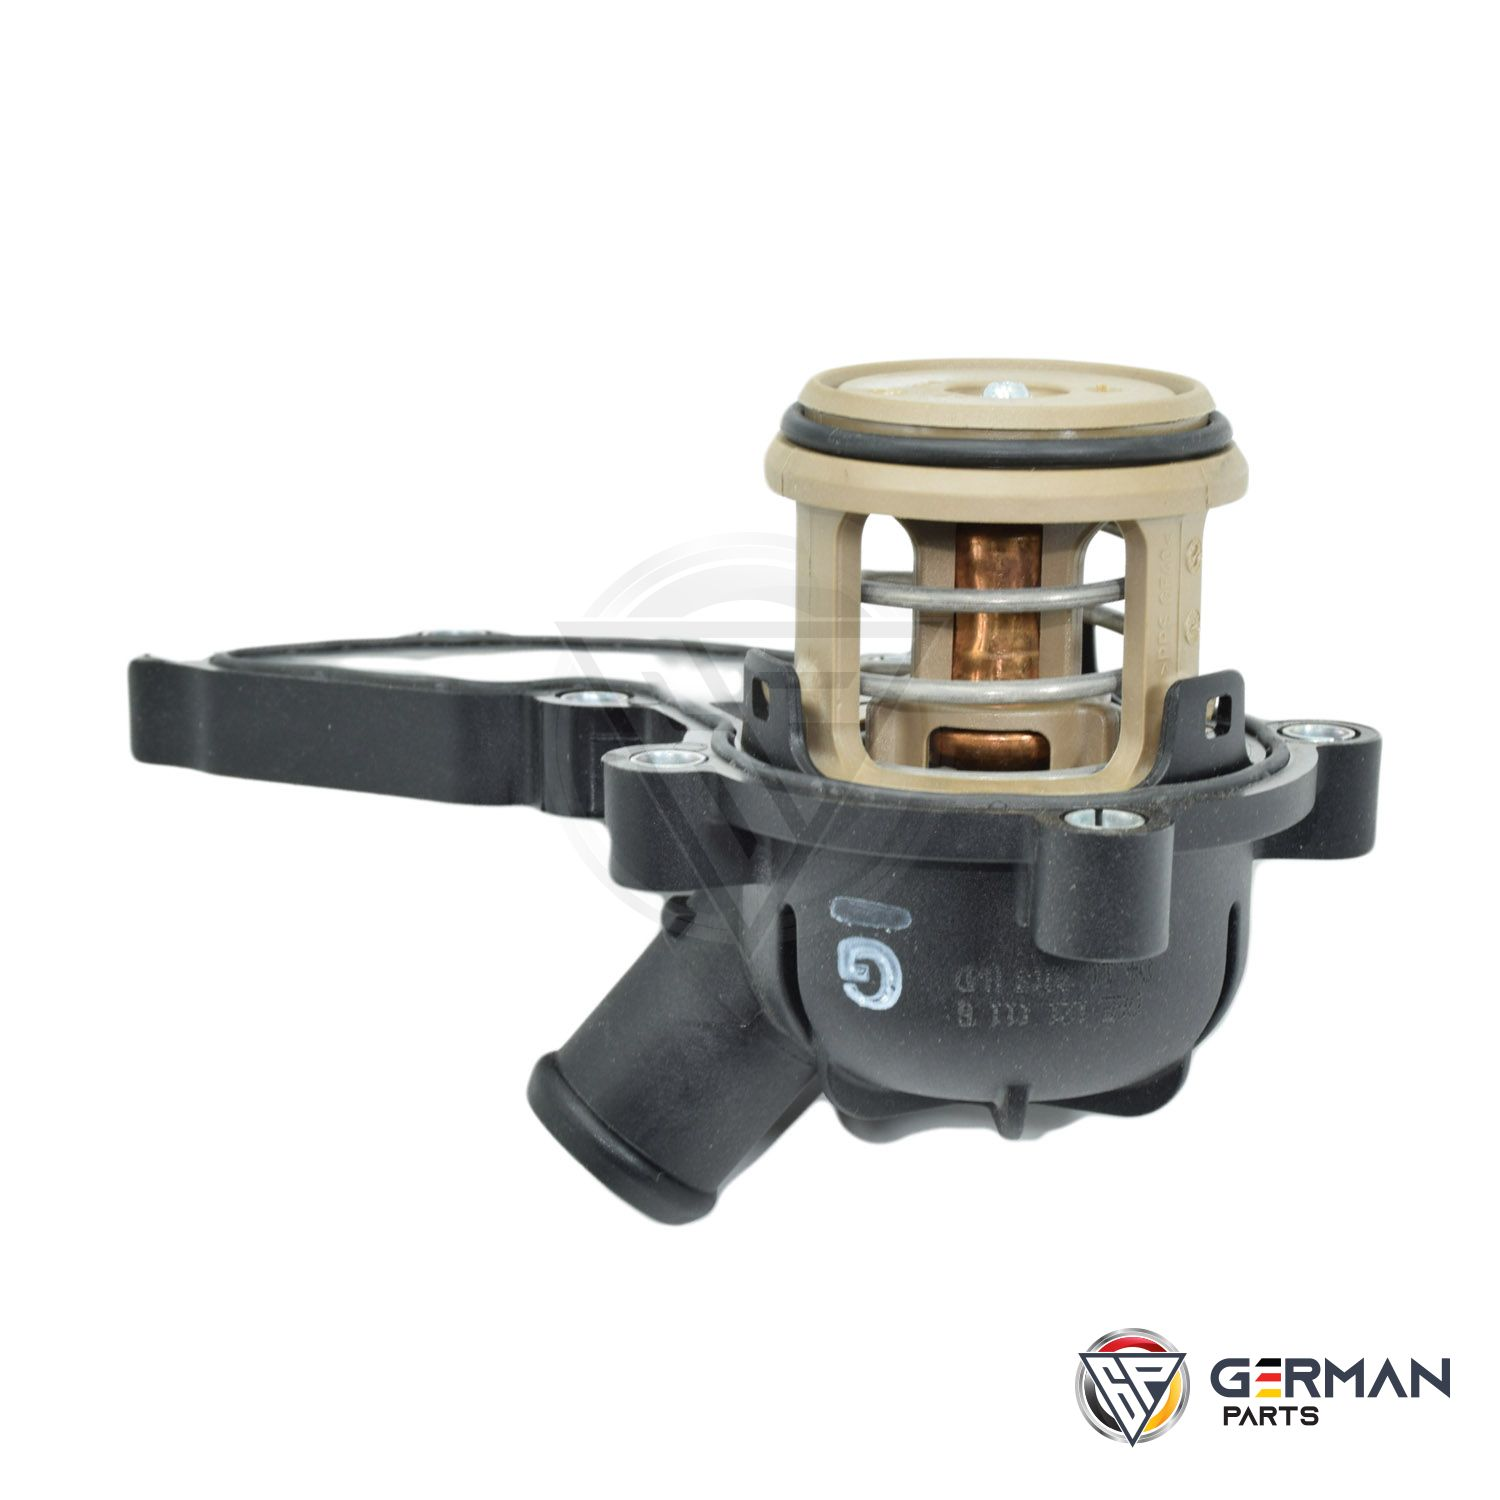 Buy Genuine Audi/Volkswagen Thermostat Assembly 06E121111G - German Parts